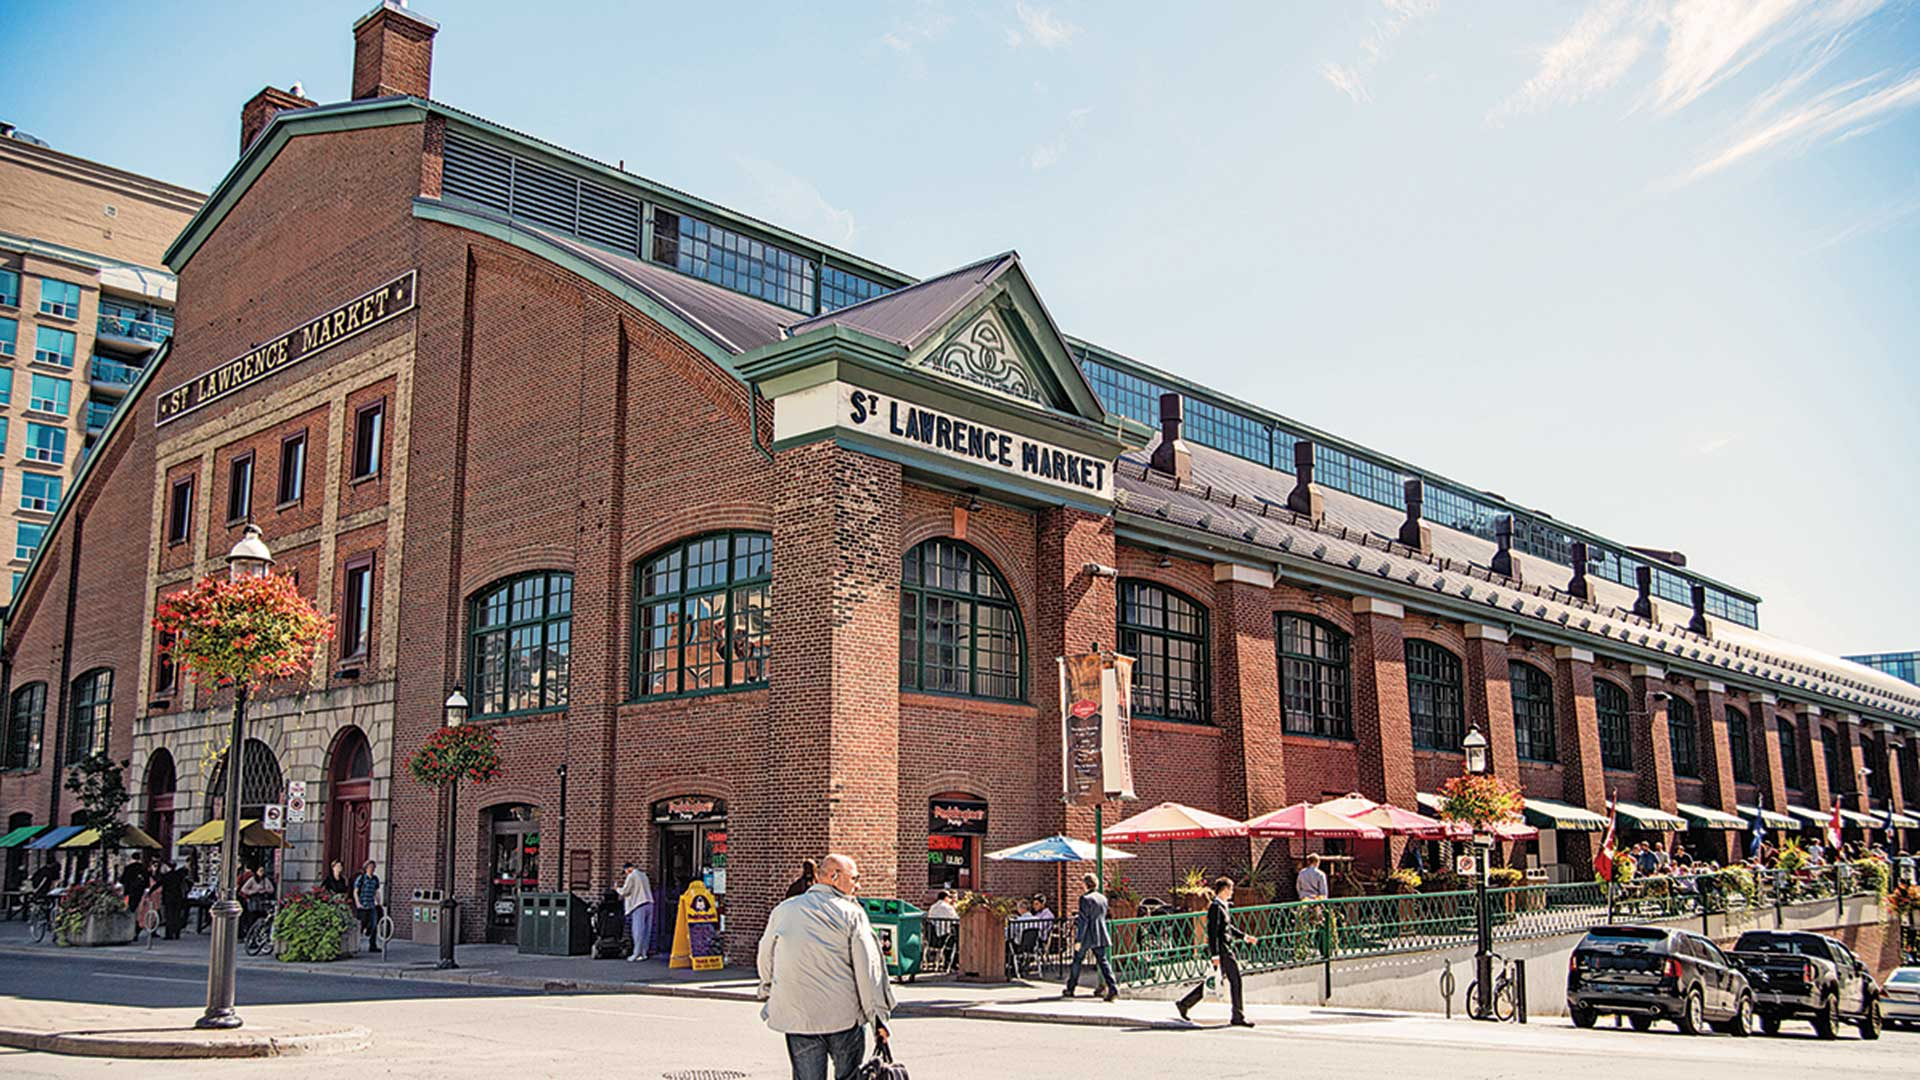 13639244001_4322052777001_FINAL-StLawrenceMarket-1920x1080